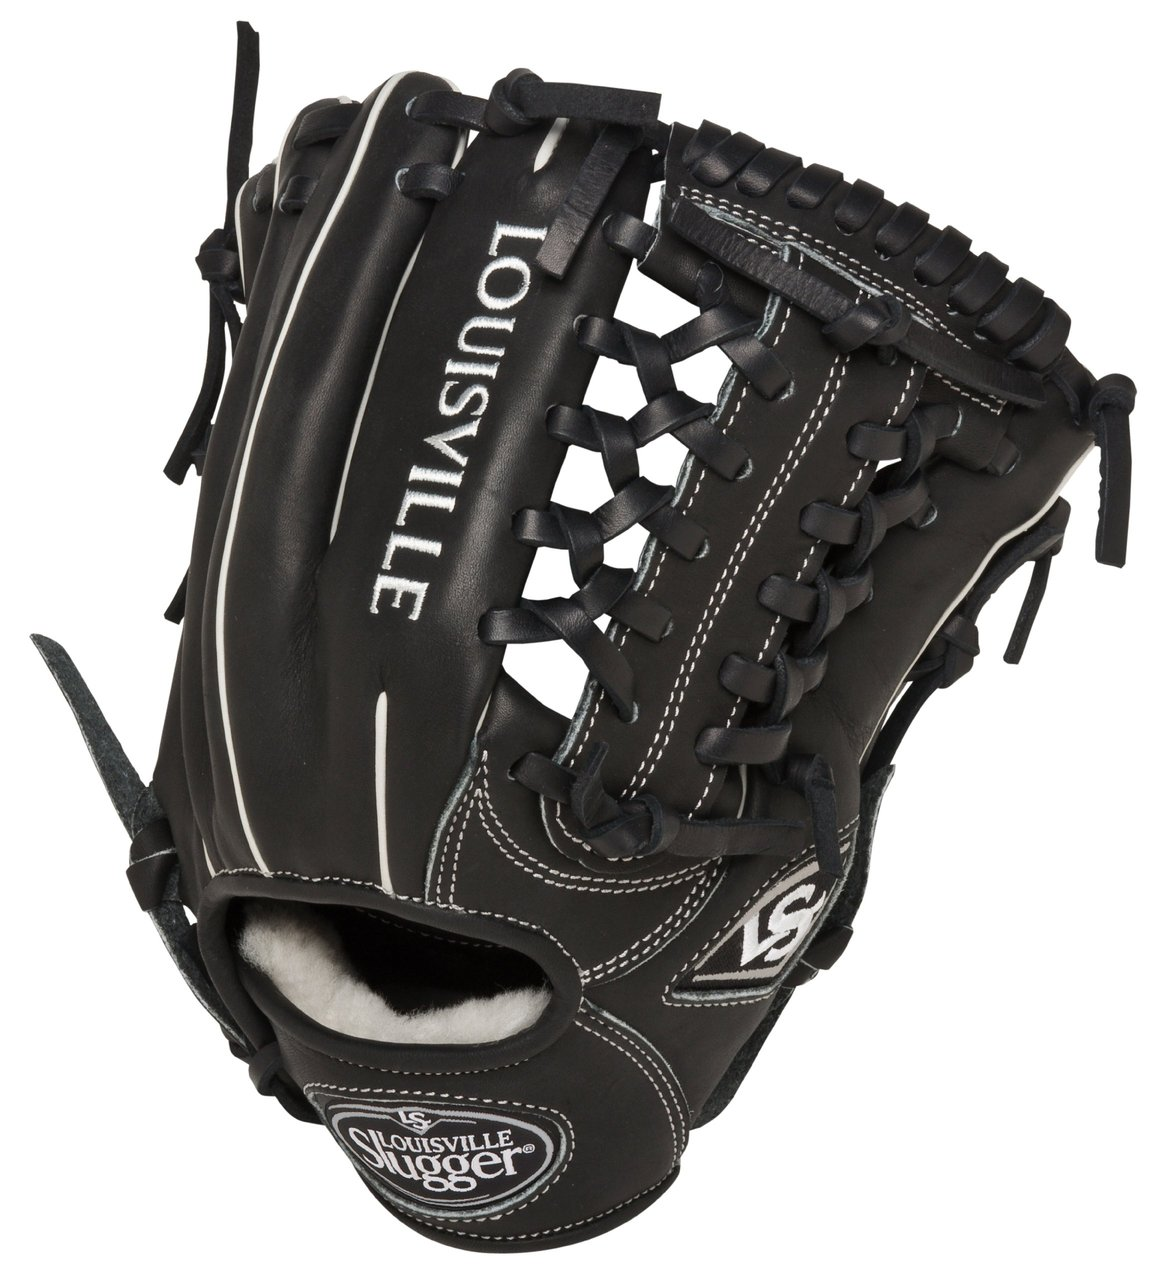 louisville-slugger-pro-flare-11-5-inch-baseball-glove-right-handed-throw FGPF14-BK115-Right Handed Throw Louisville Slugger 044277006679 Louisville Slugger Pro Flare 11.5 inch Baseball Glove Right Handed Throw.